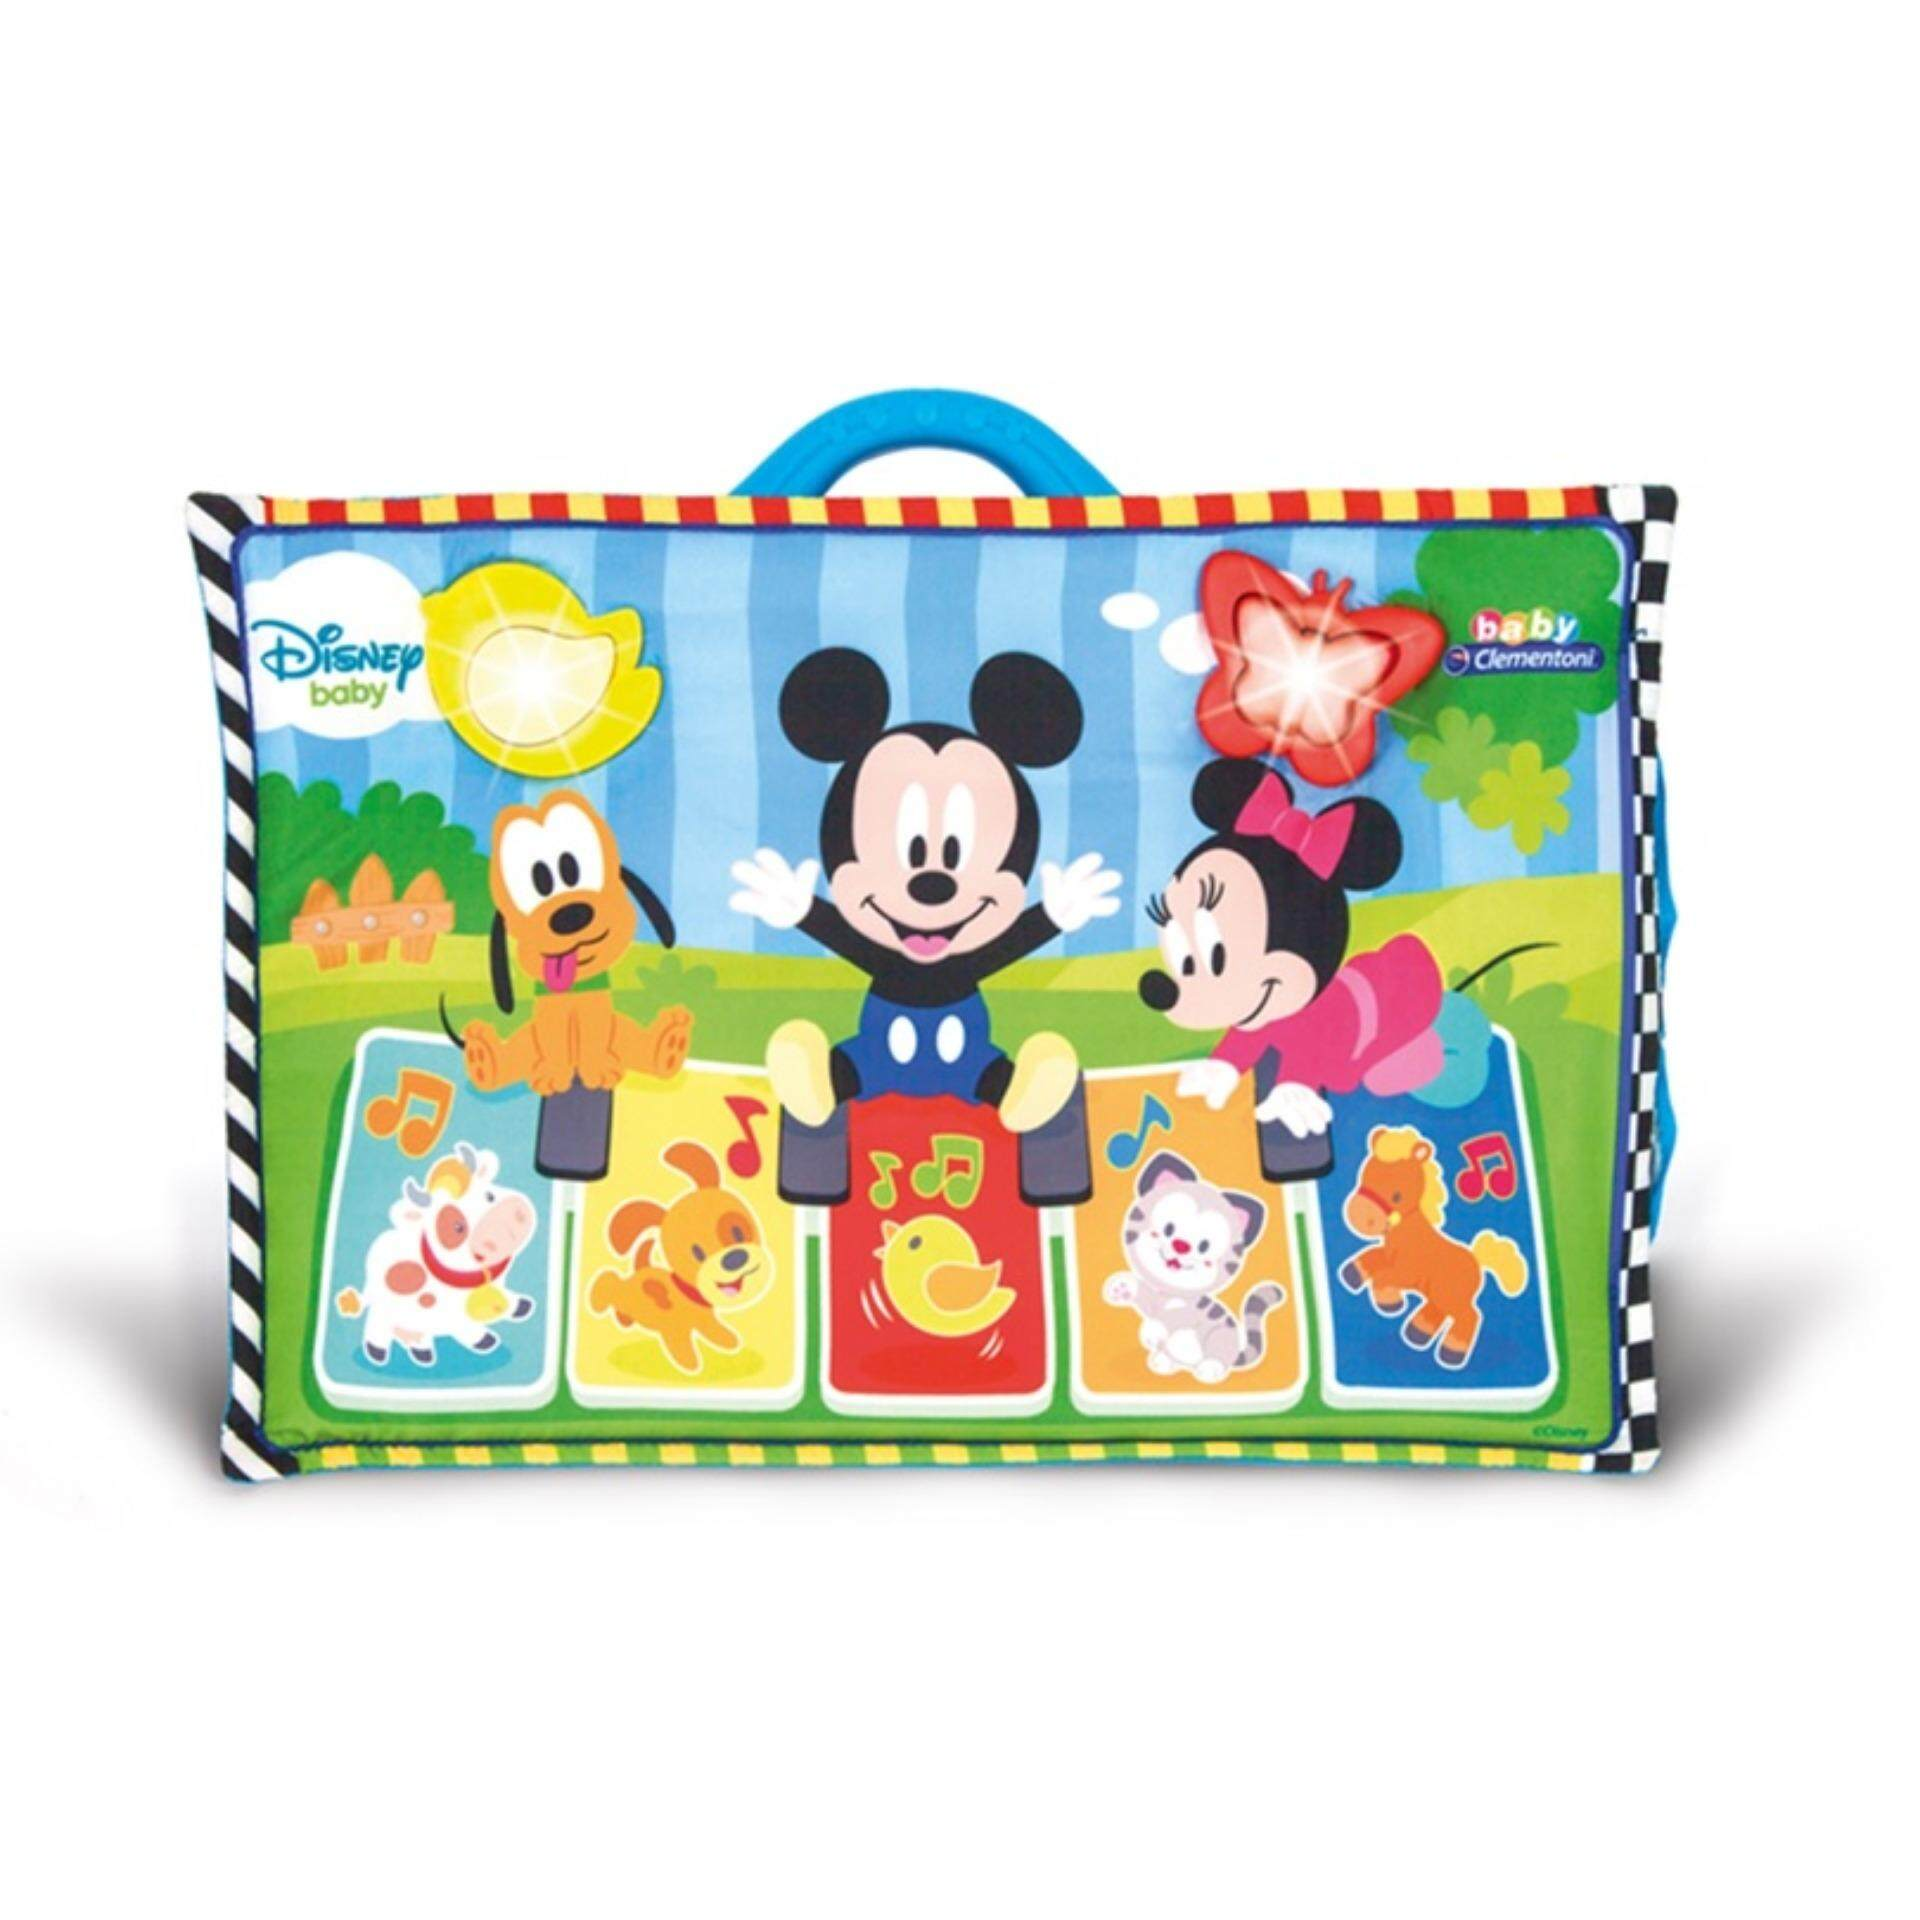 Disney Baby Developmental Hanging Cot Panel Musical Toys - Mickey toys education